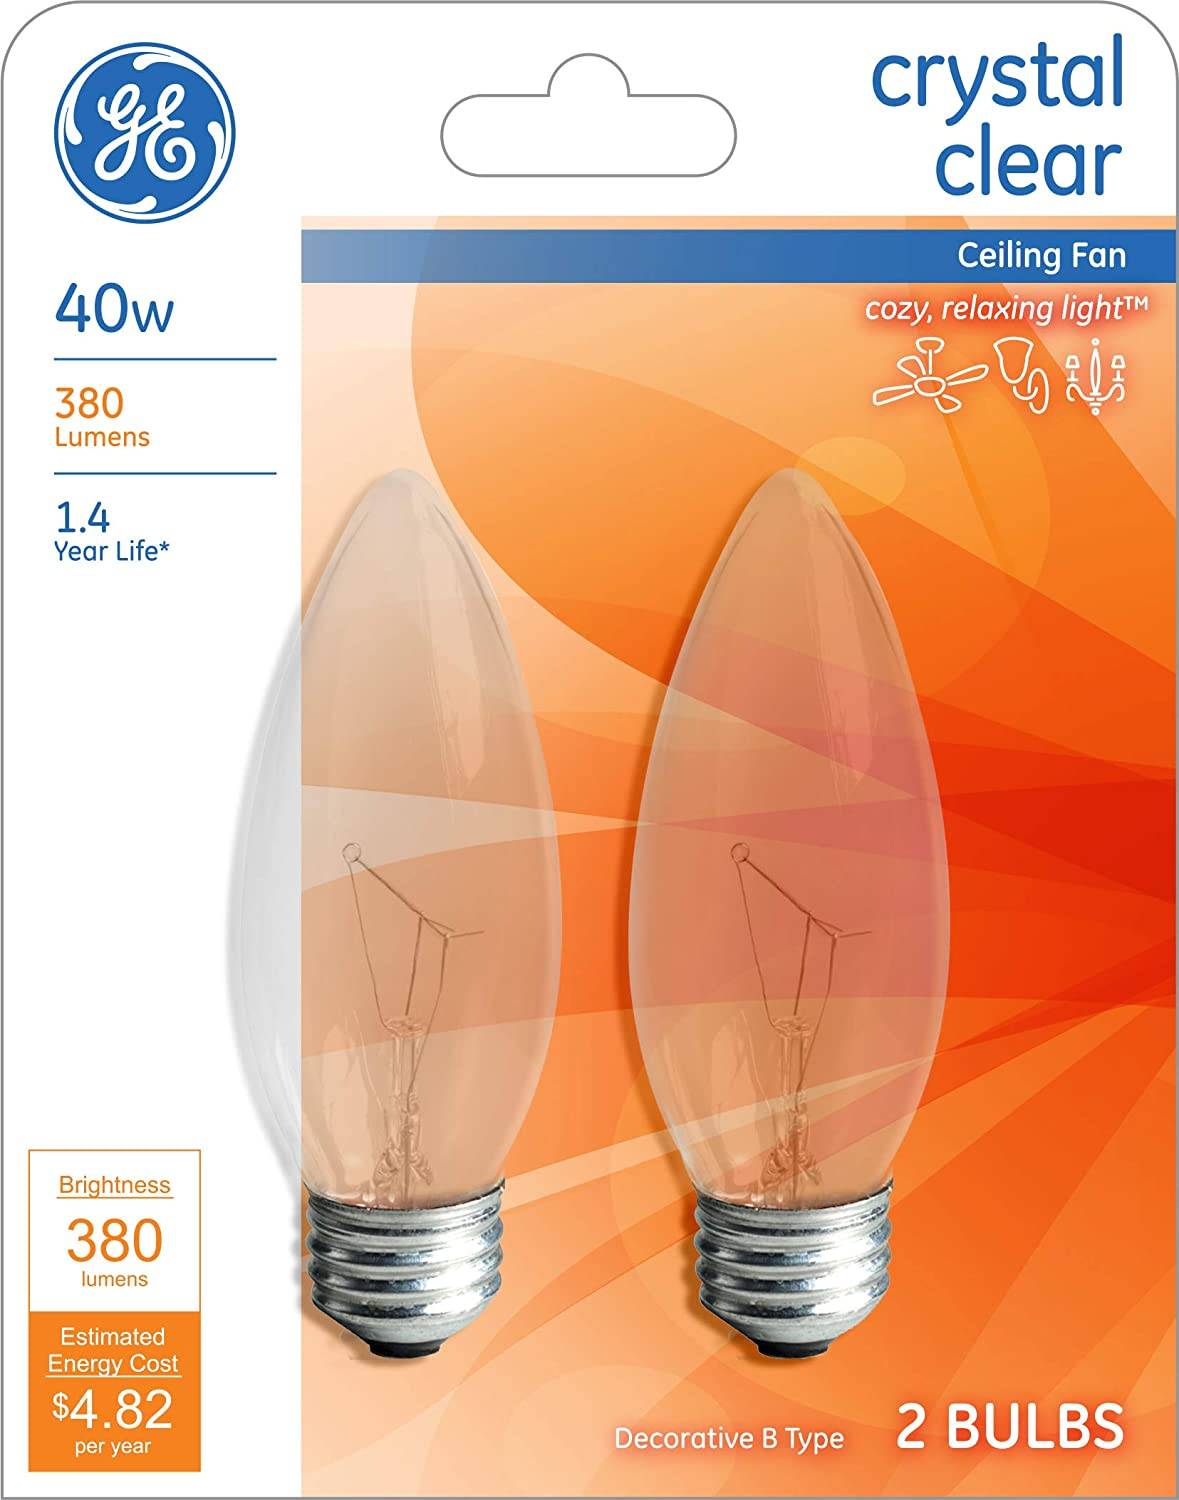 Box of 12 Count New GE Crystal Clear 40w Ceiling Fan Bulbs 380 Lumens B Type Lot